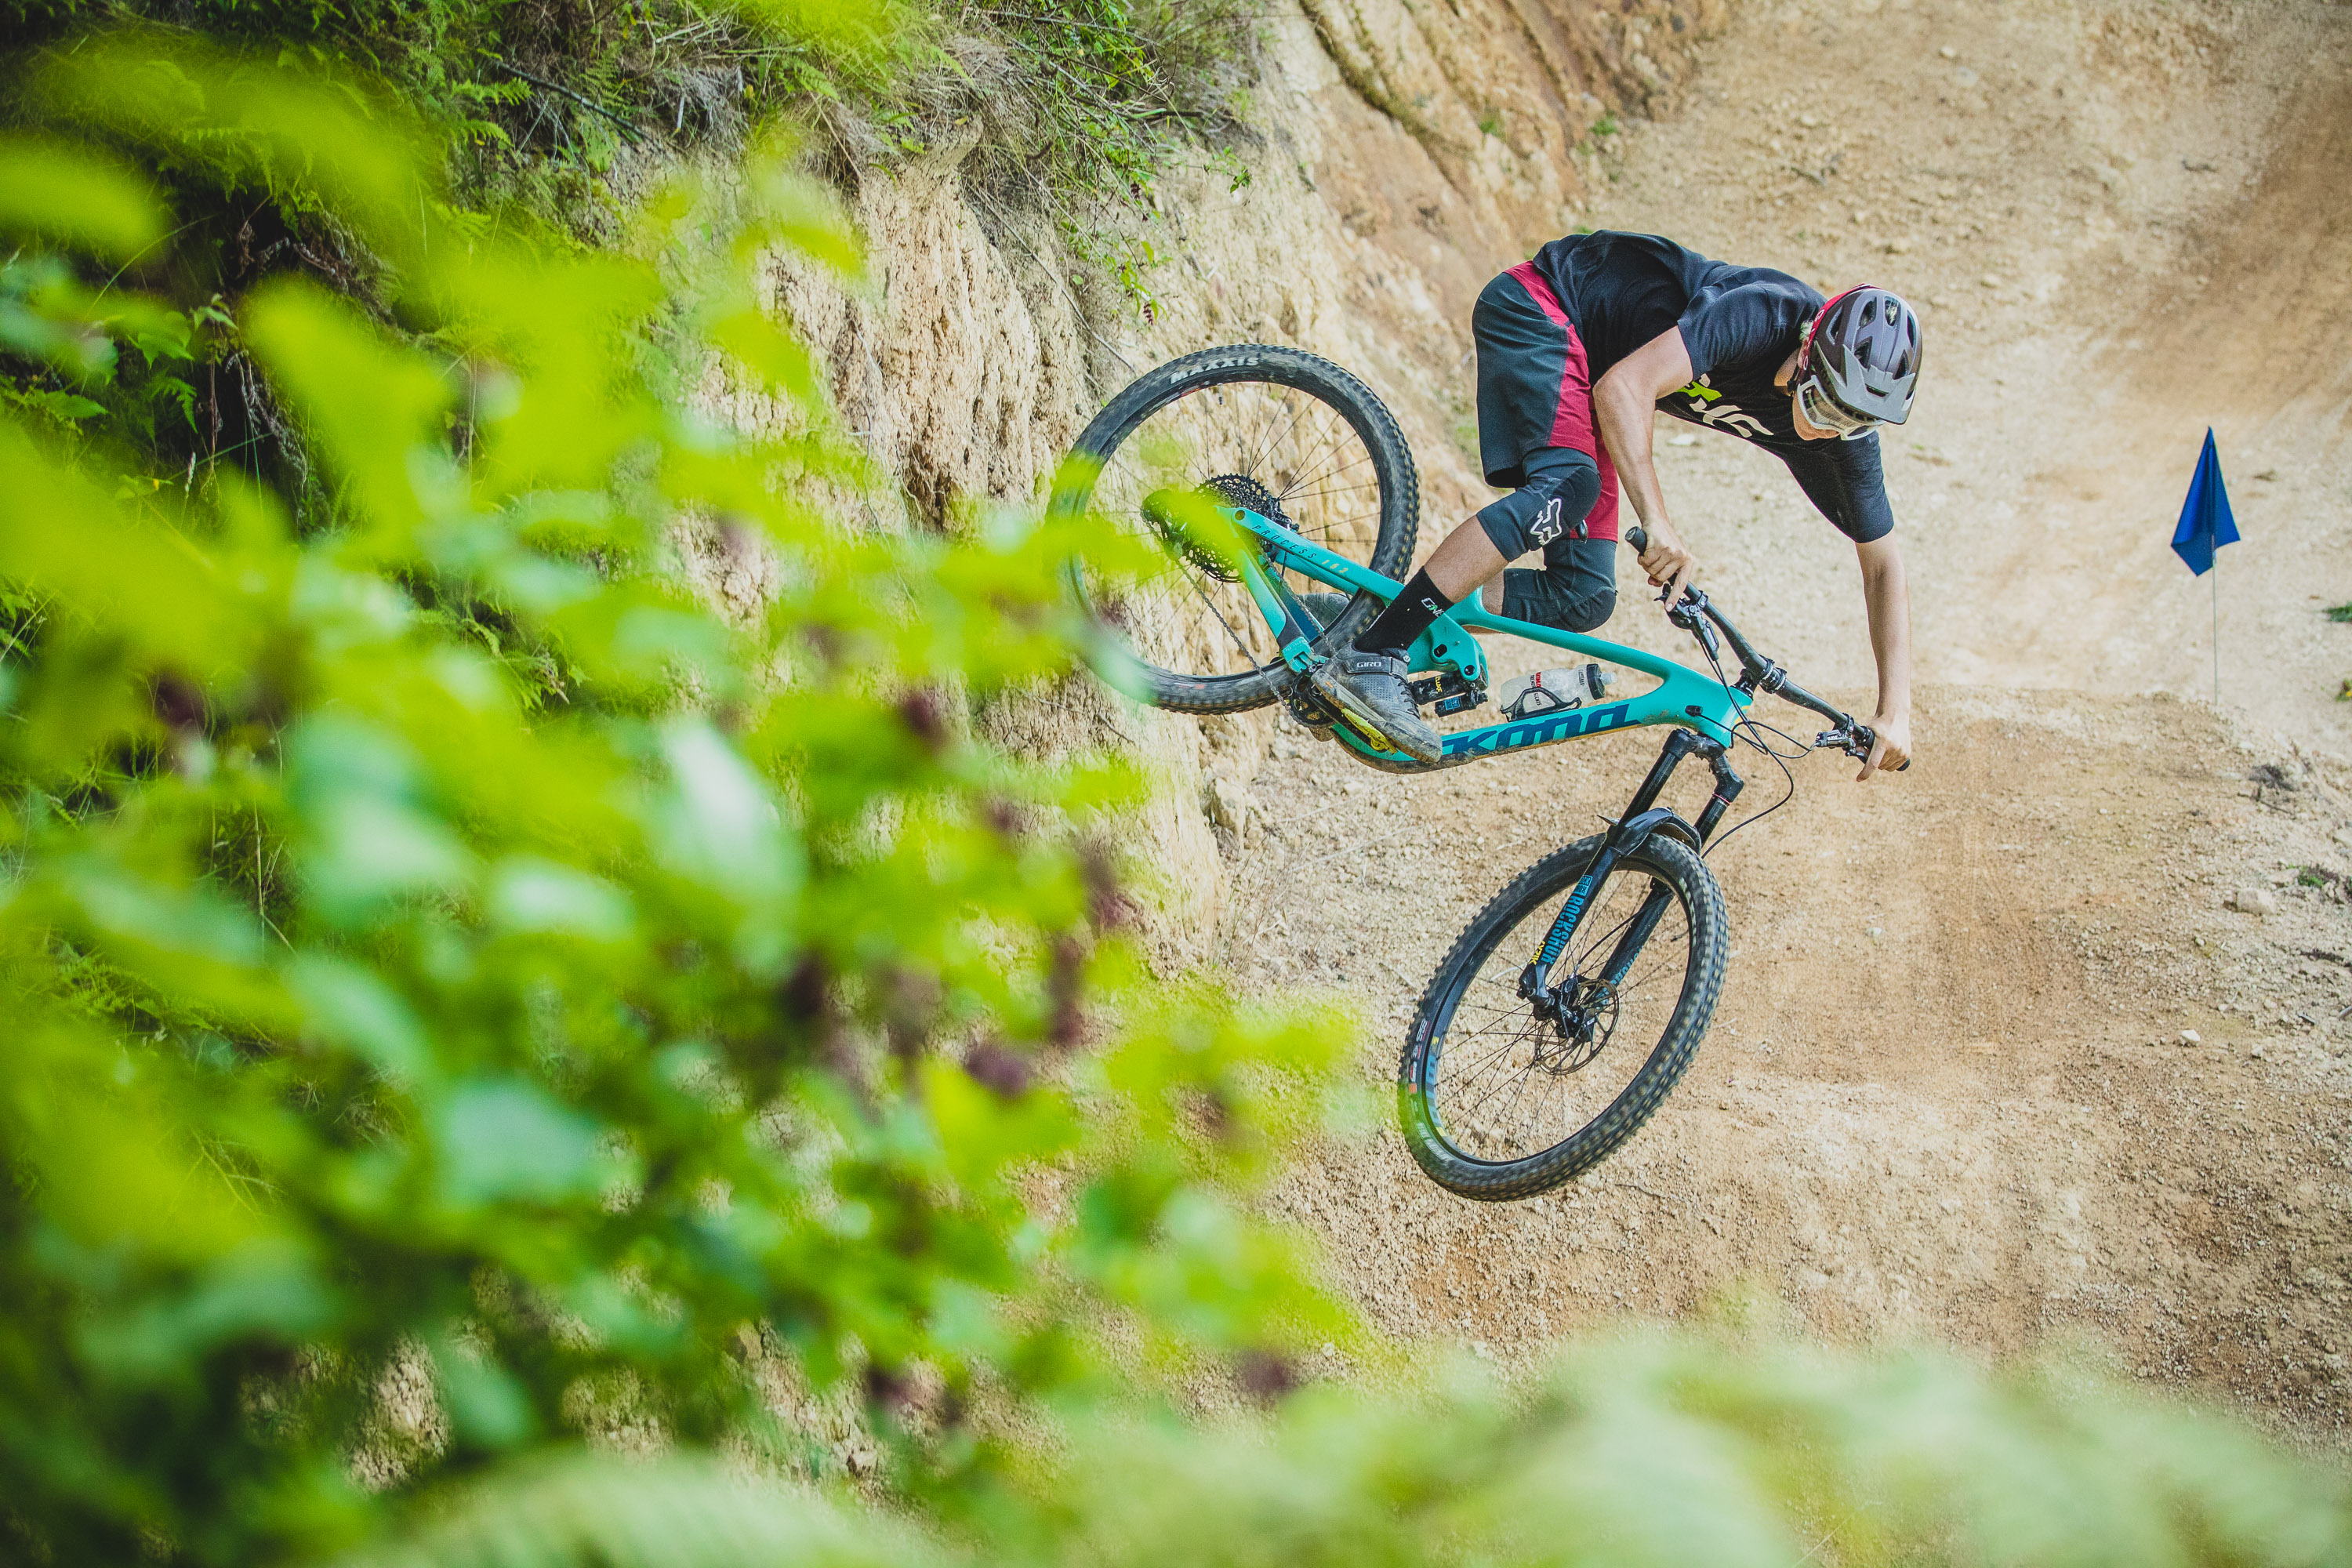 Kiwi Kona Riders Pay Dirt Farm NZ Bikepark a Visit